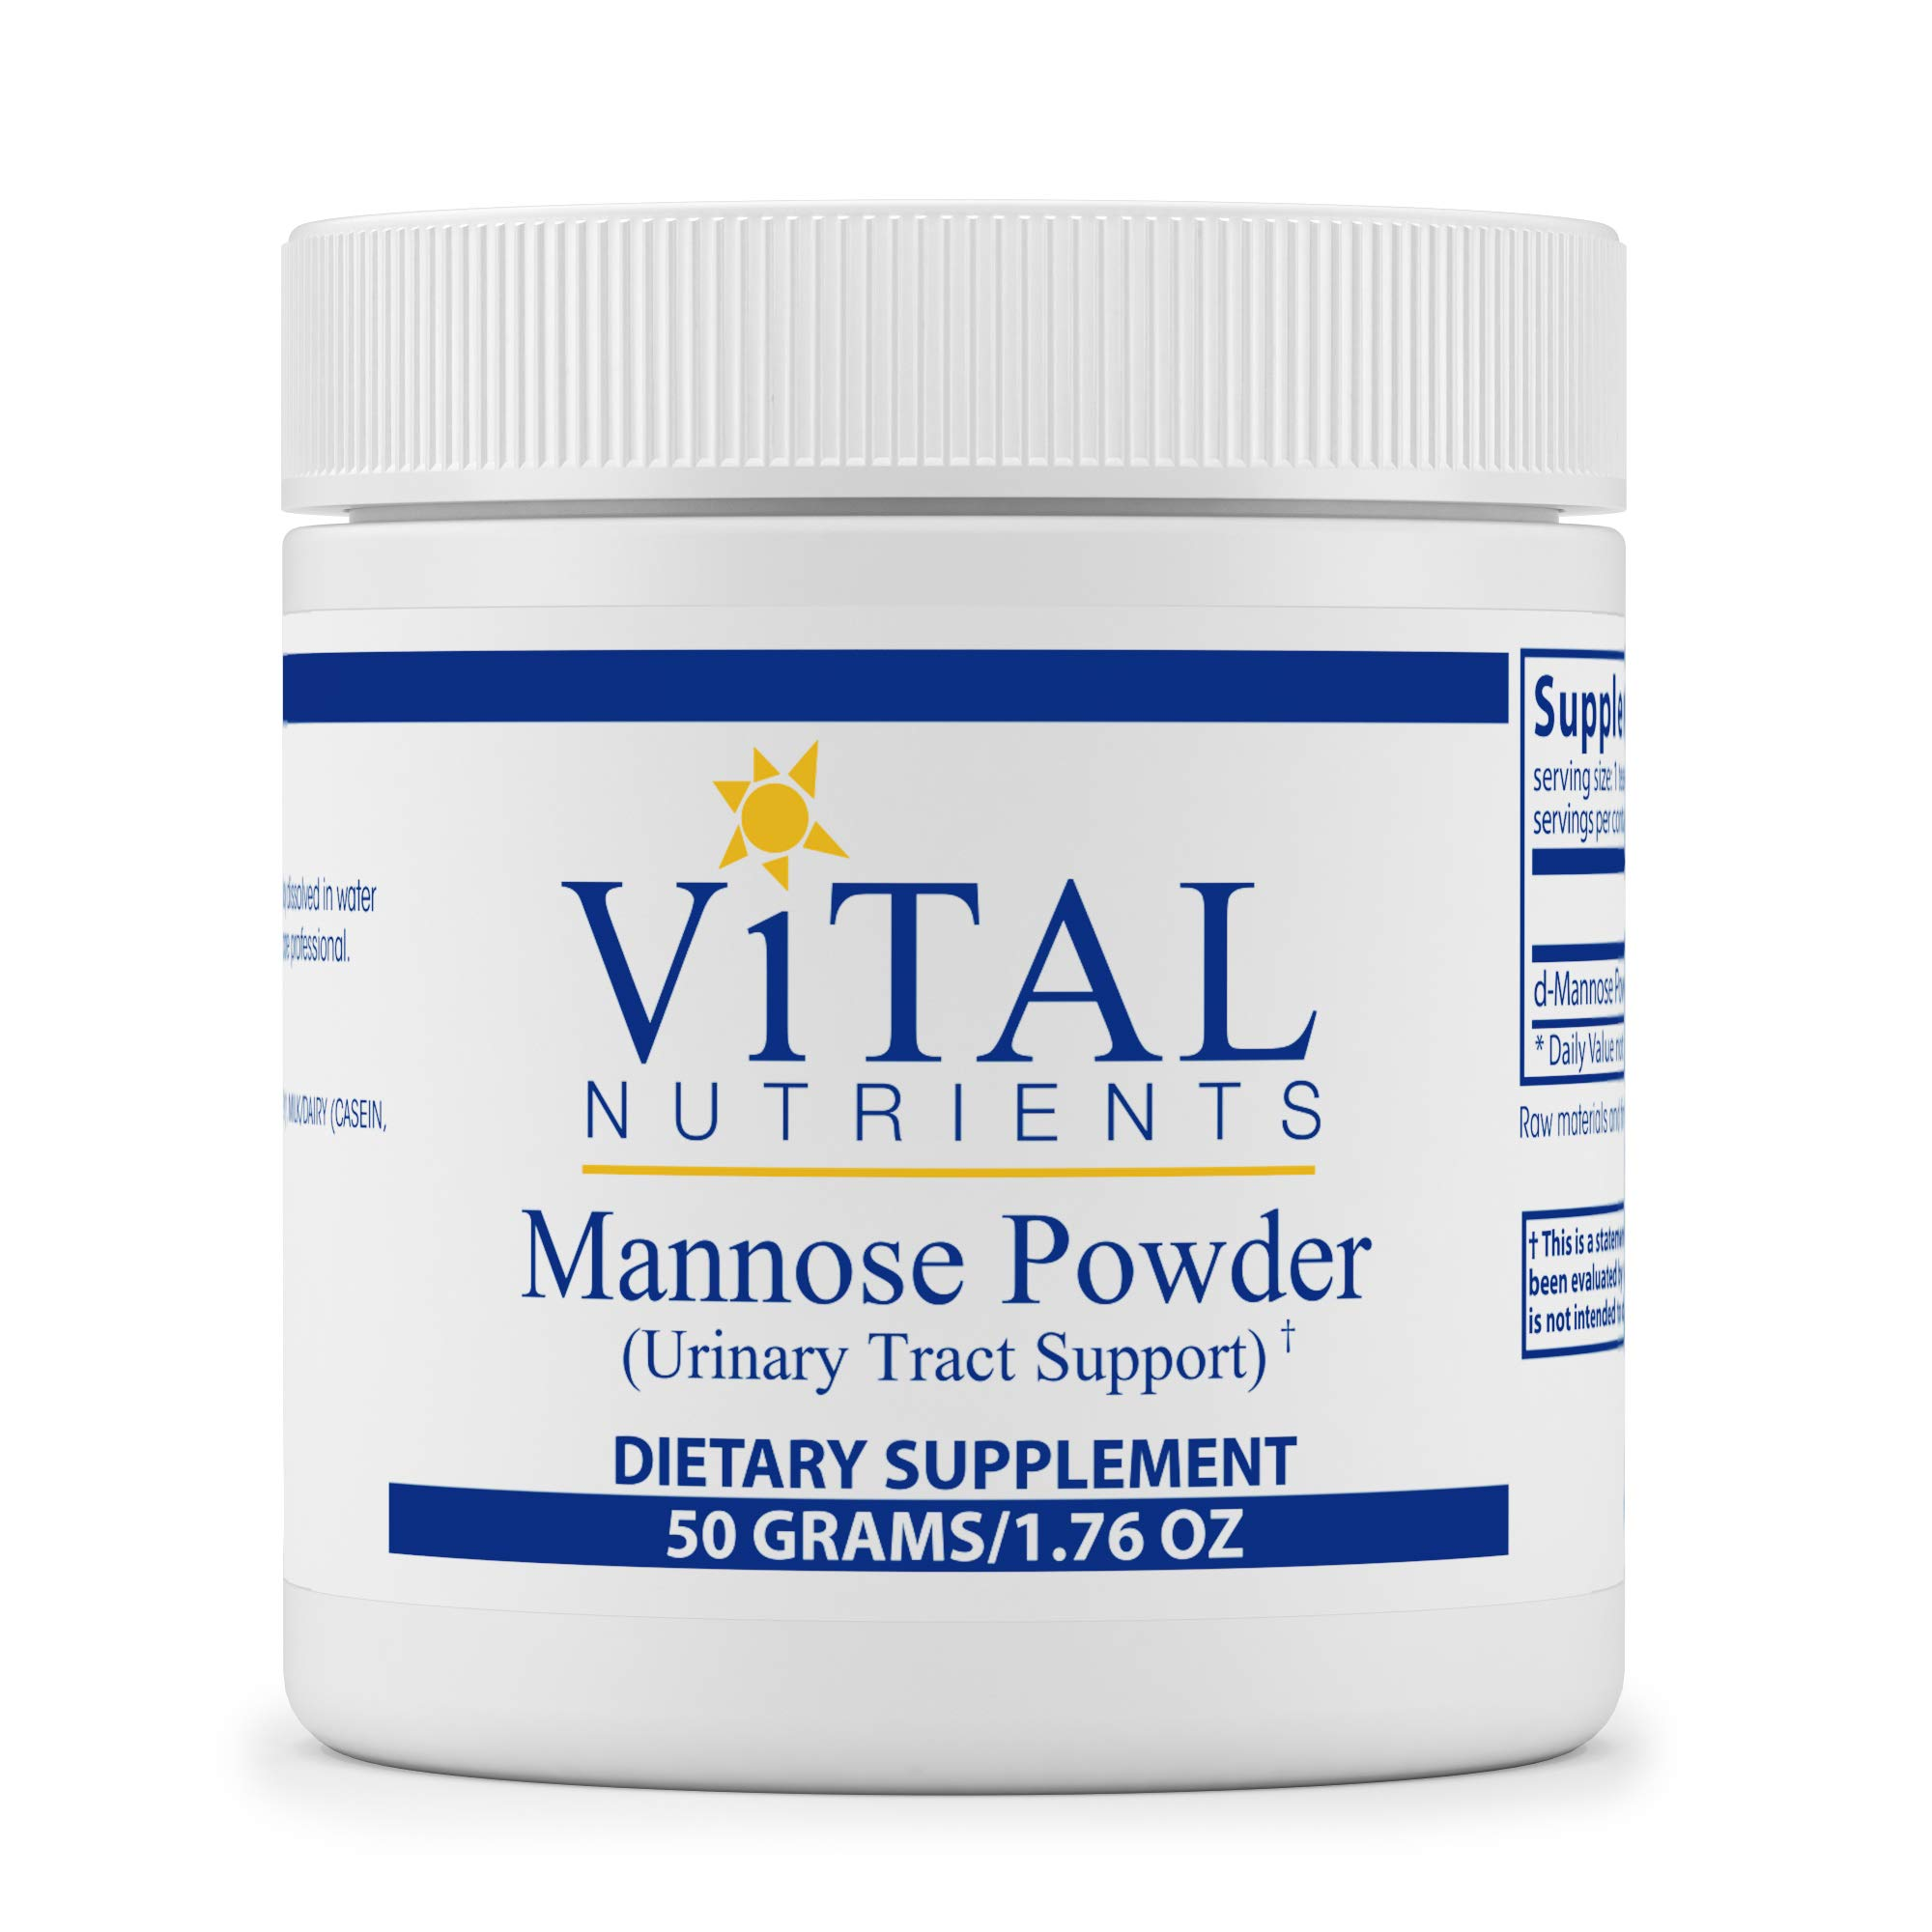 Vital Nutrients - Mannose Powder - Urinary Tract Support - 50 Grams per Bottle